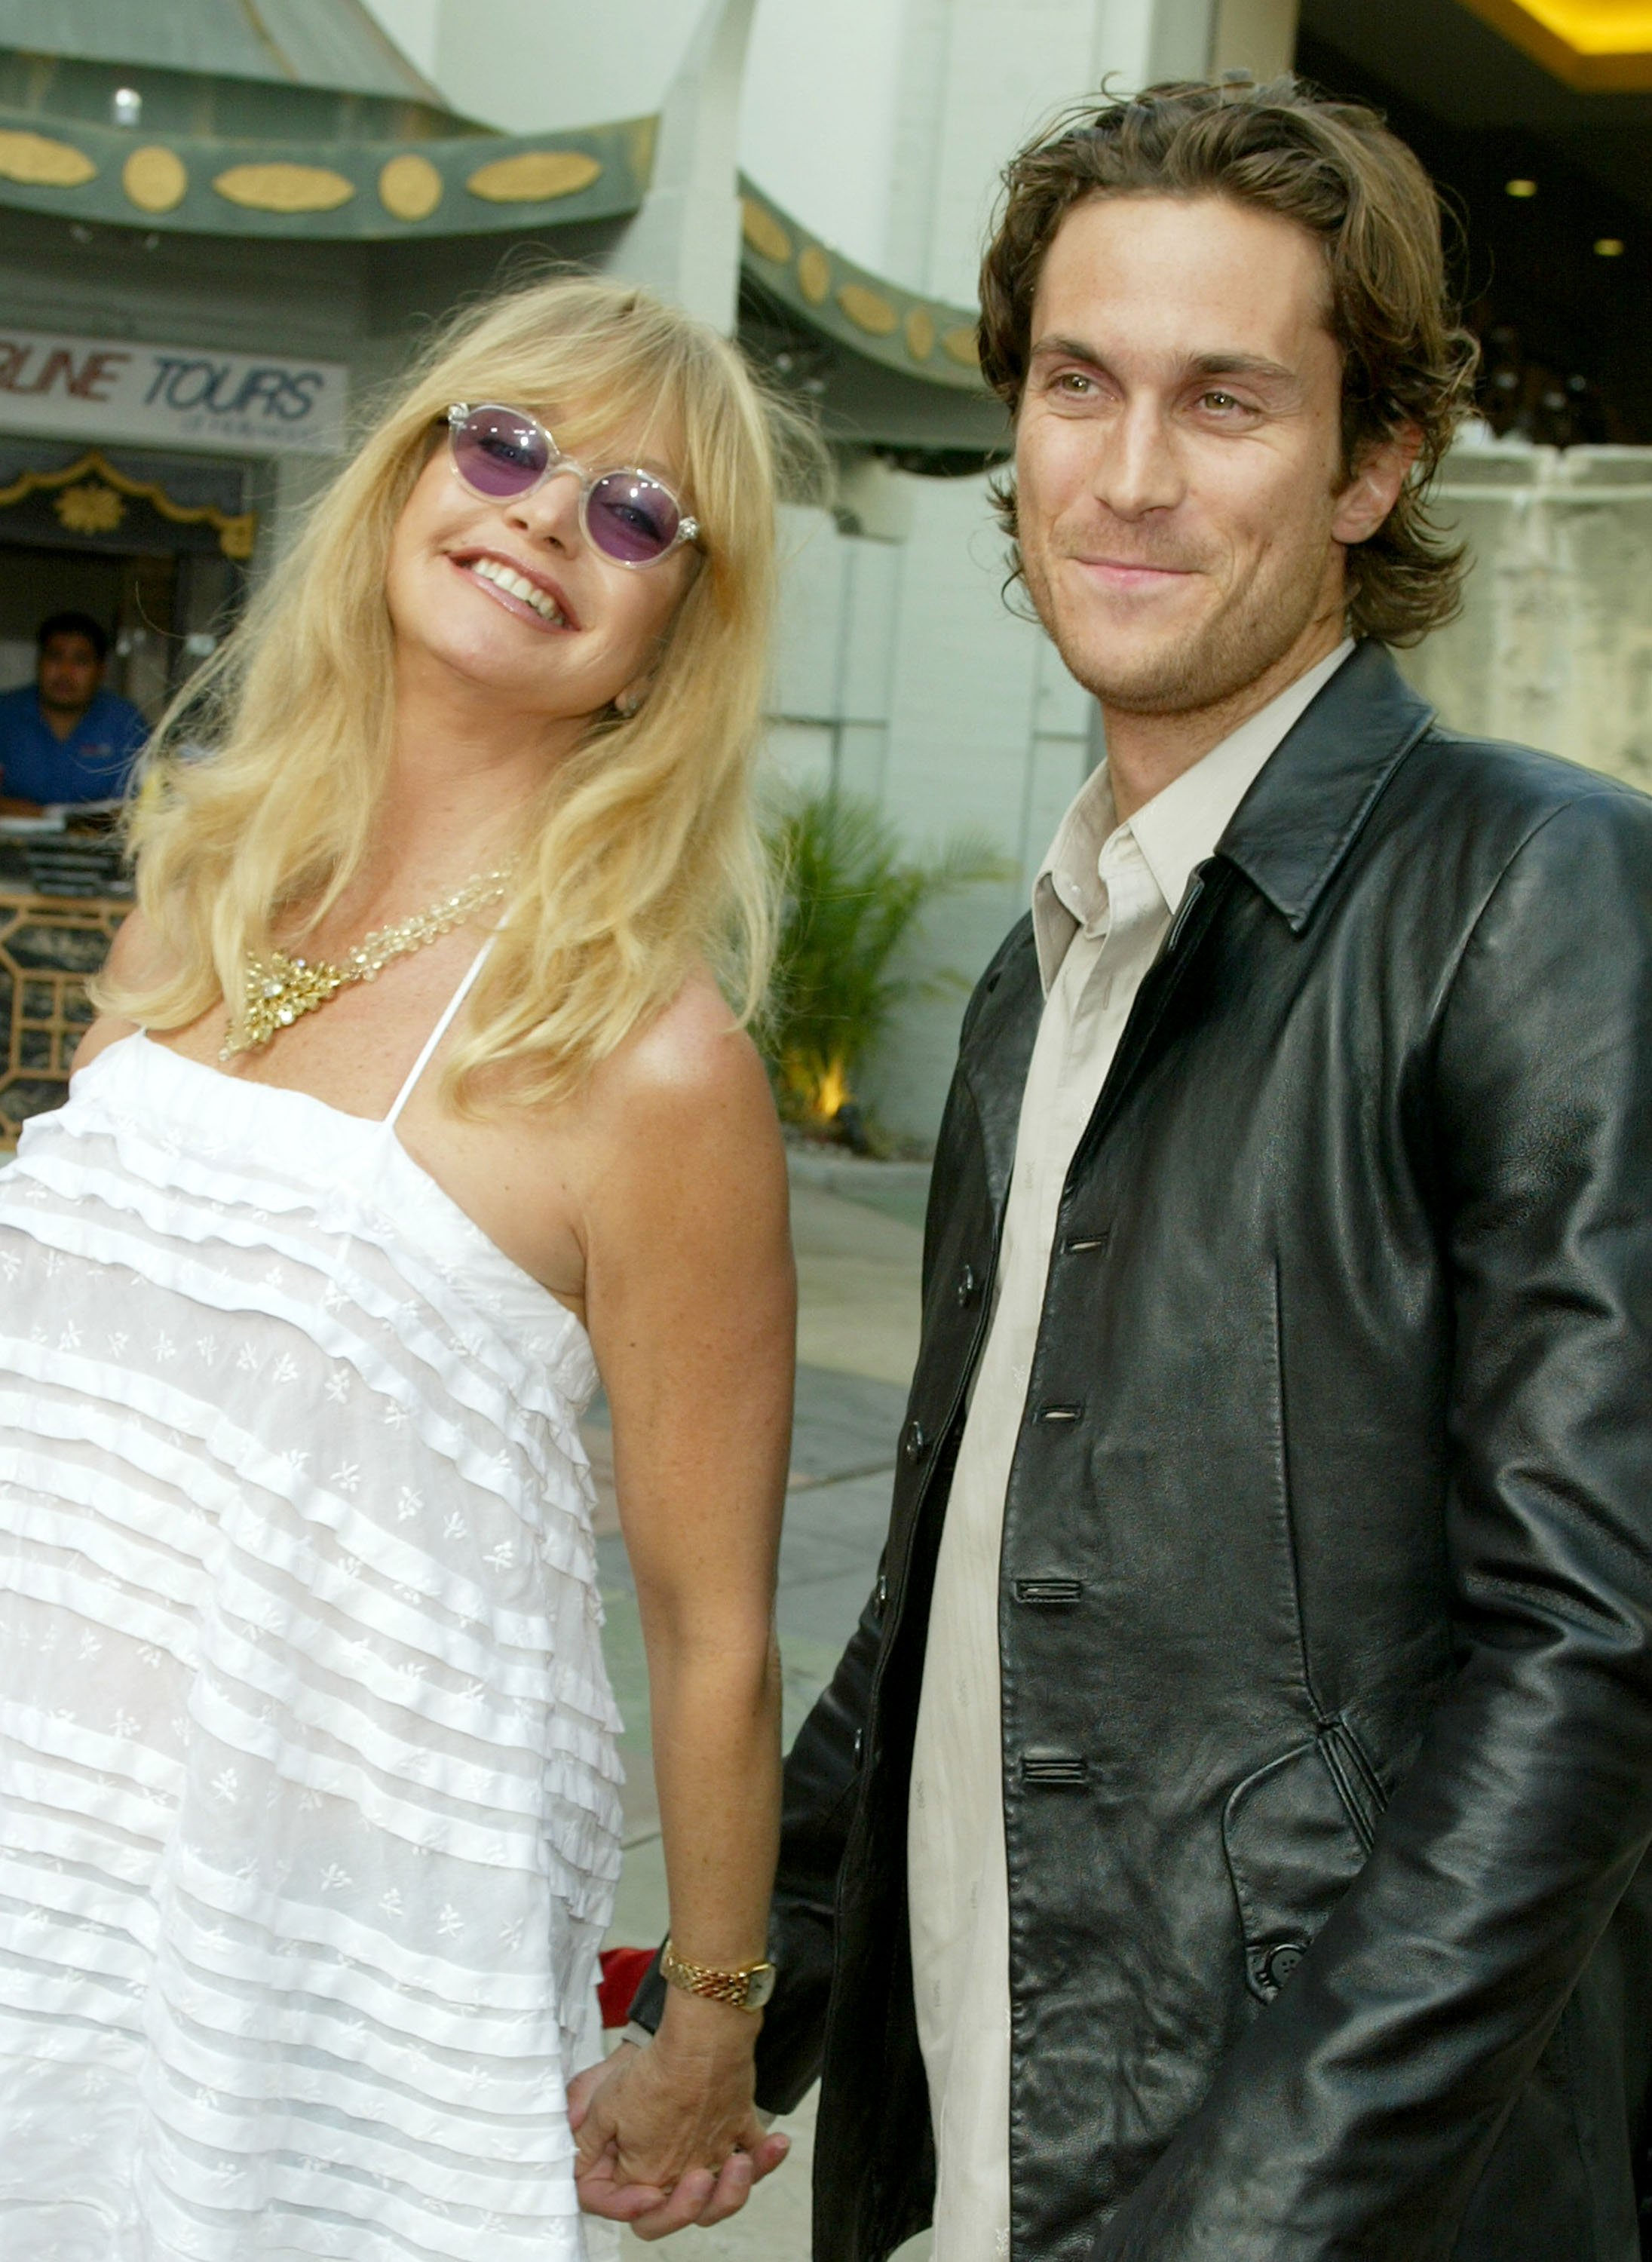 Goldie Hawn and her son Oliver Hudson attend the Alex & Emma premiere at the Grauman's Chinese Theater on June 16, 2003, in Hollywood, California. | Source: Getty Images.